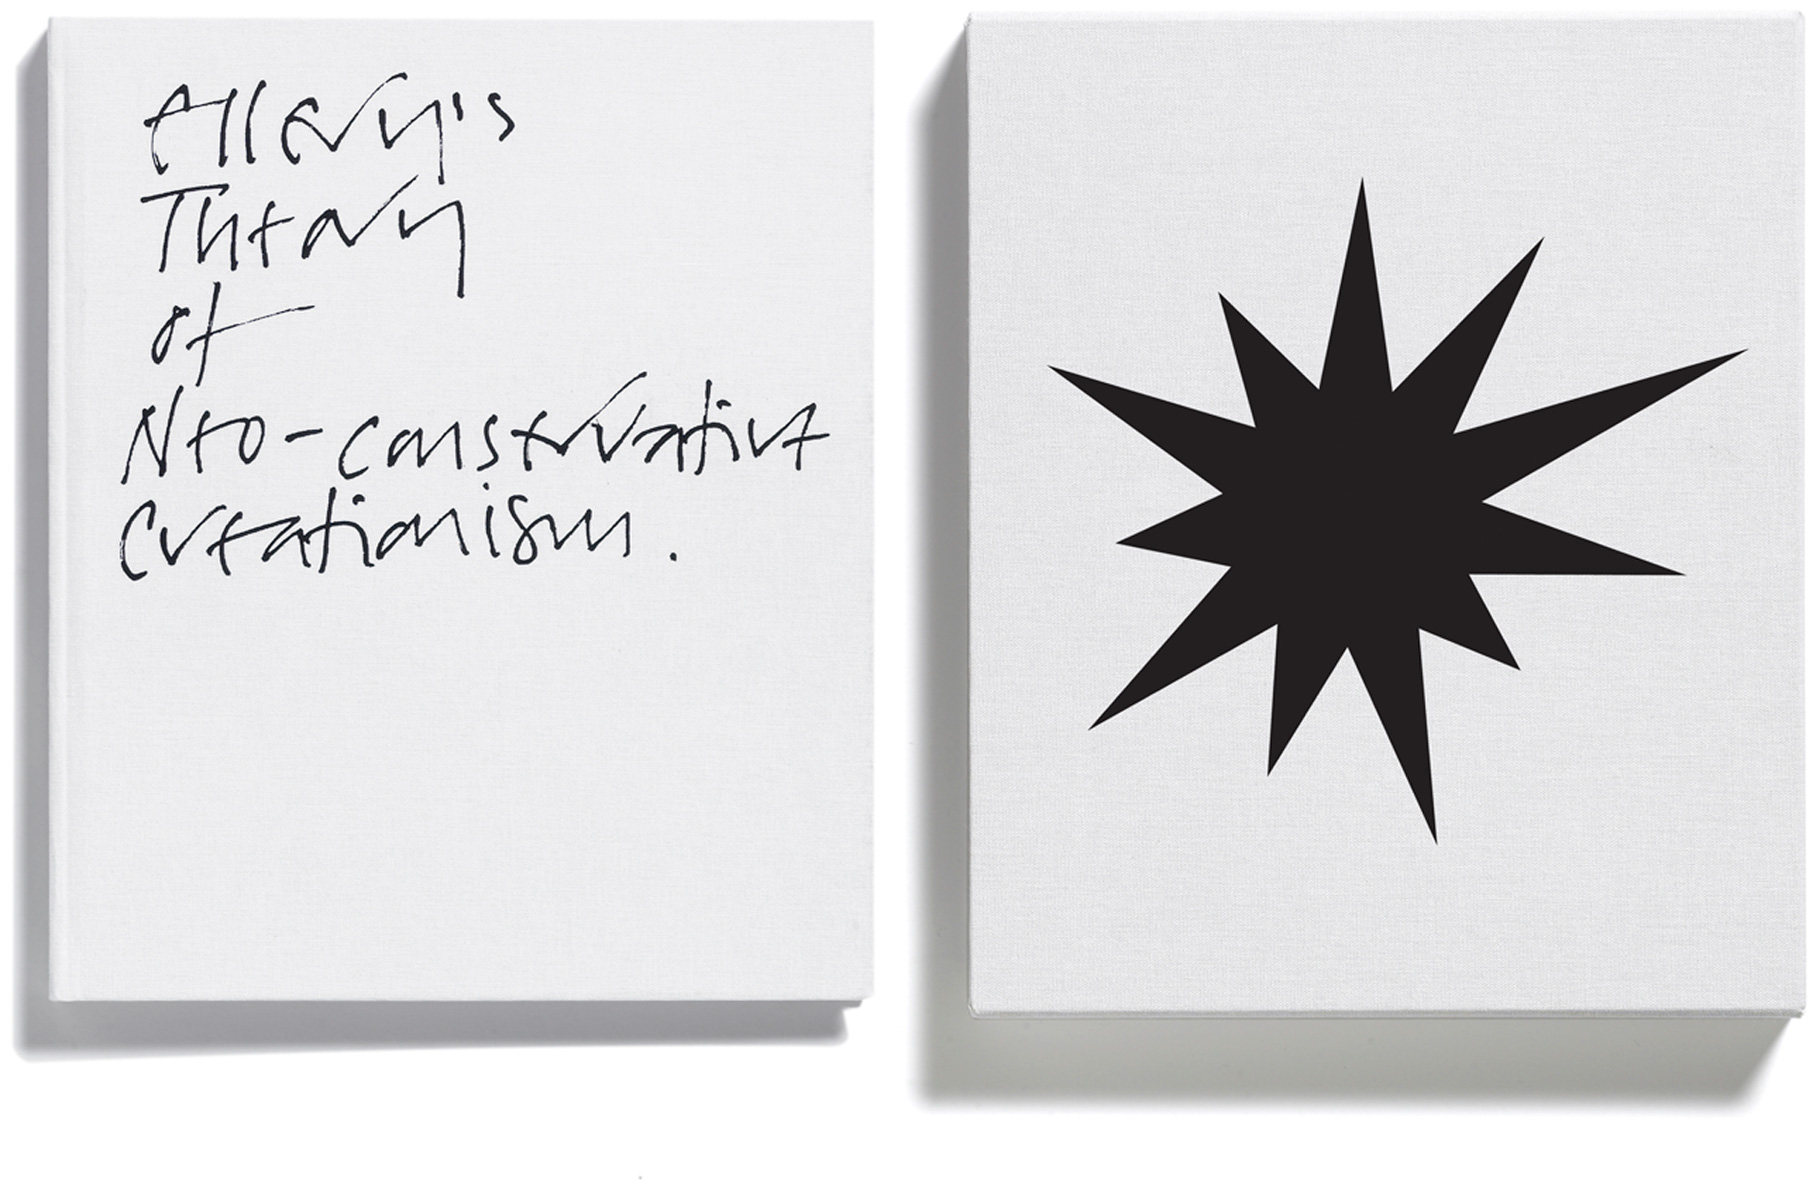 Browns Editions, Jonathan Ellery, Ellerys Theory of Neo-conservative Creationism, designed by Browns Design, Art, book